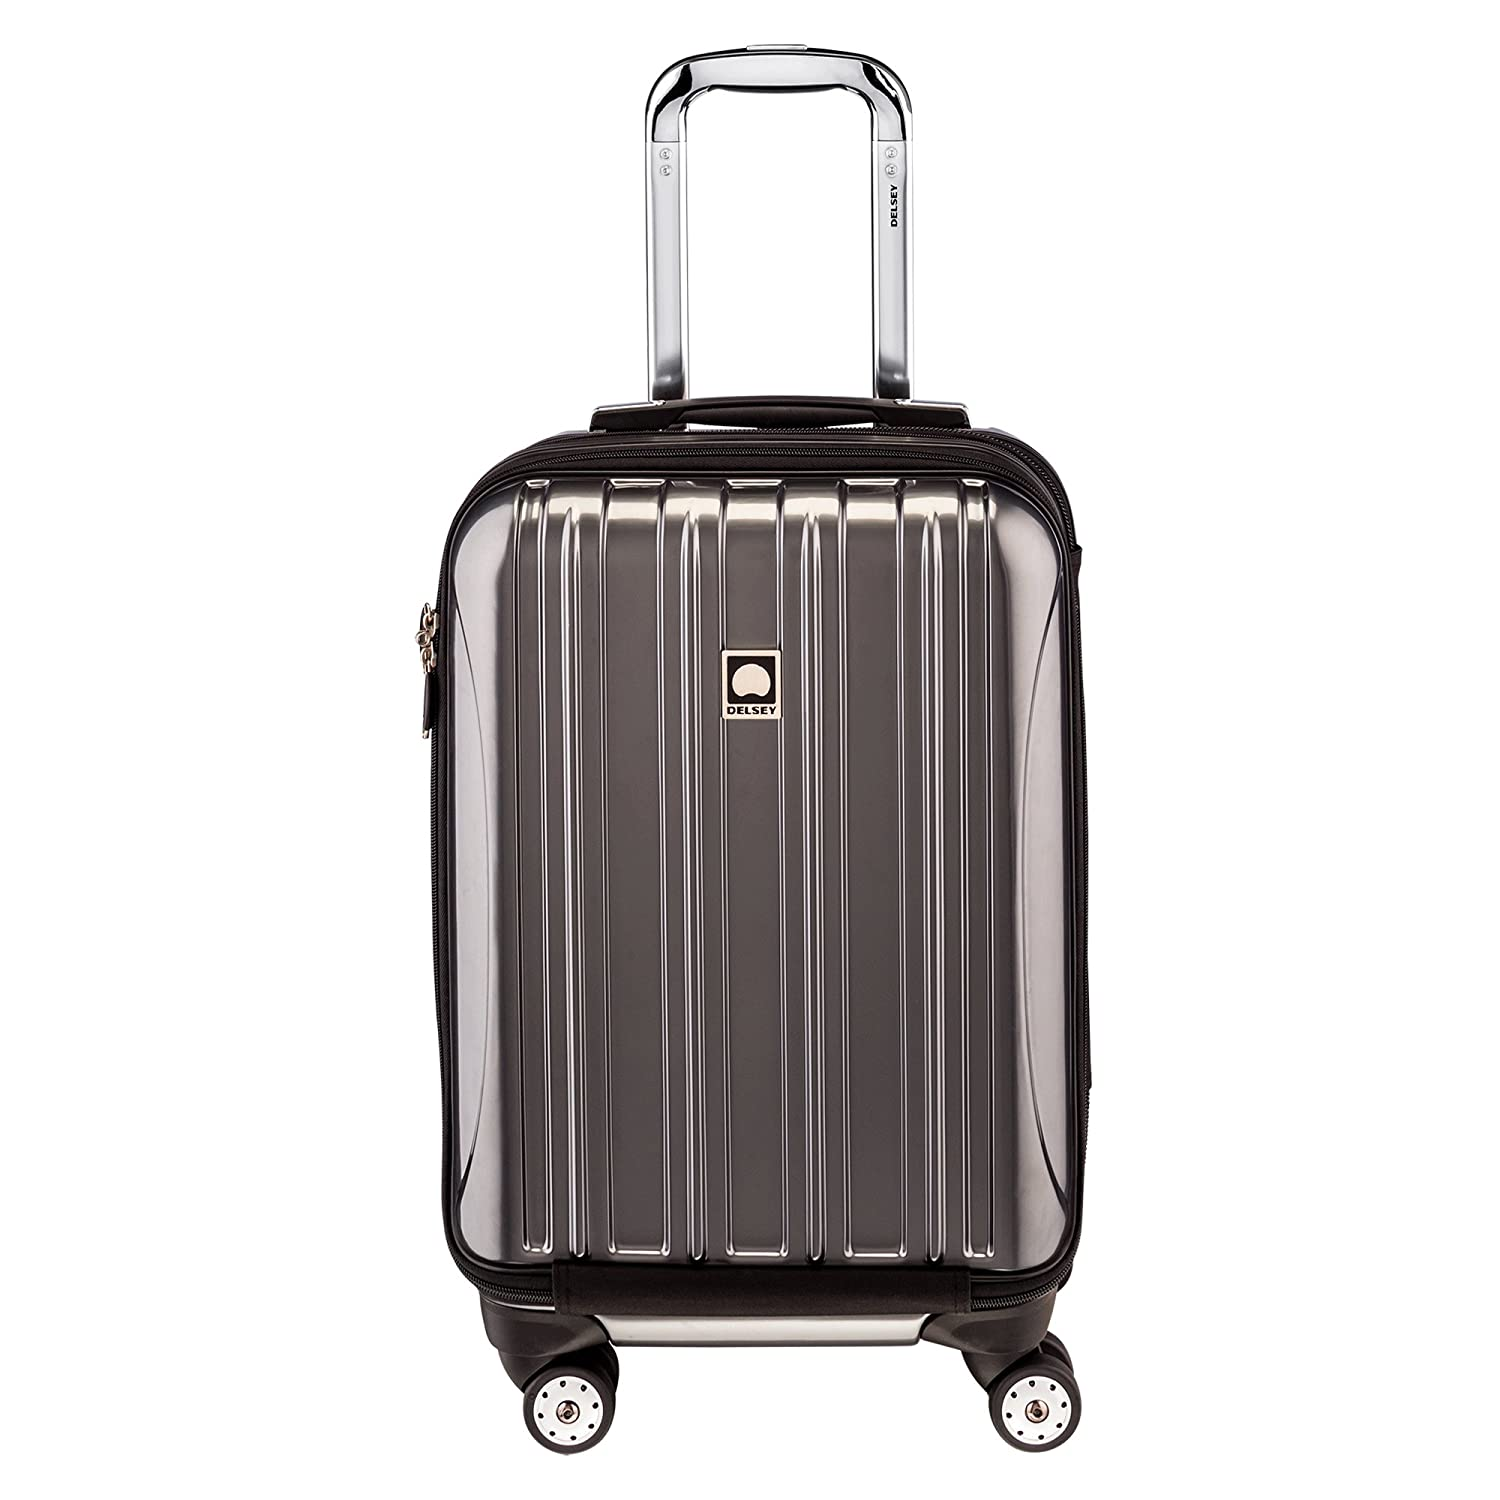 The Delsey Luggage Luggage Helium Aero Int'l Carry-on Exp. Spinner Trolley travel product recommended by Magdalena Kernan on Lifney.